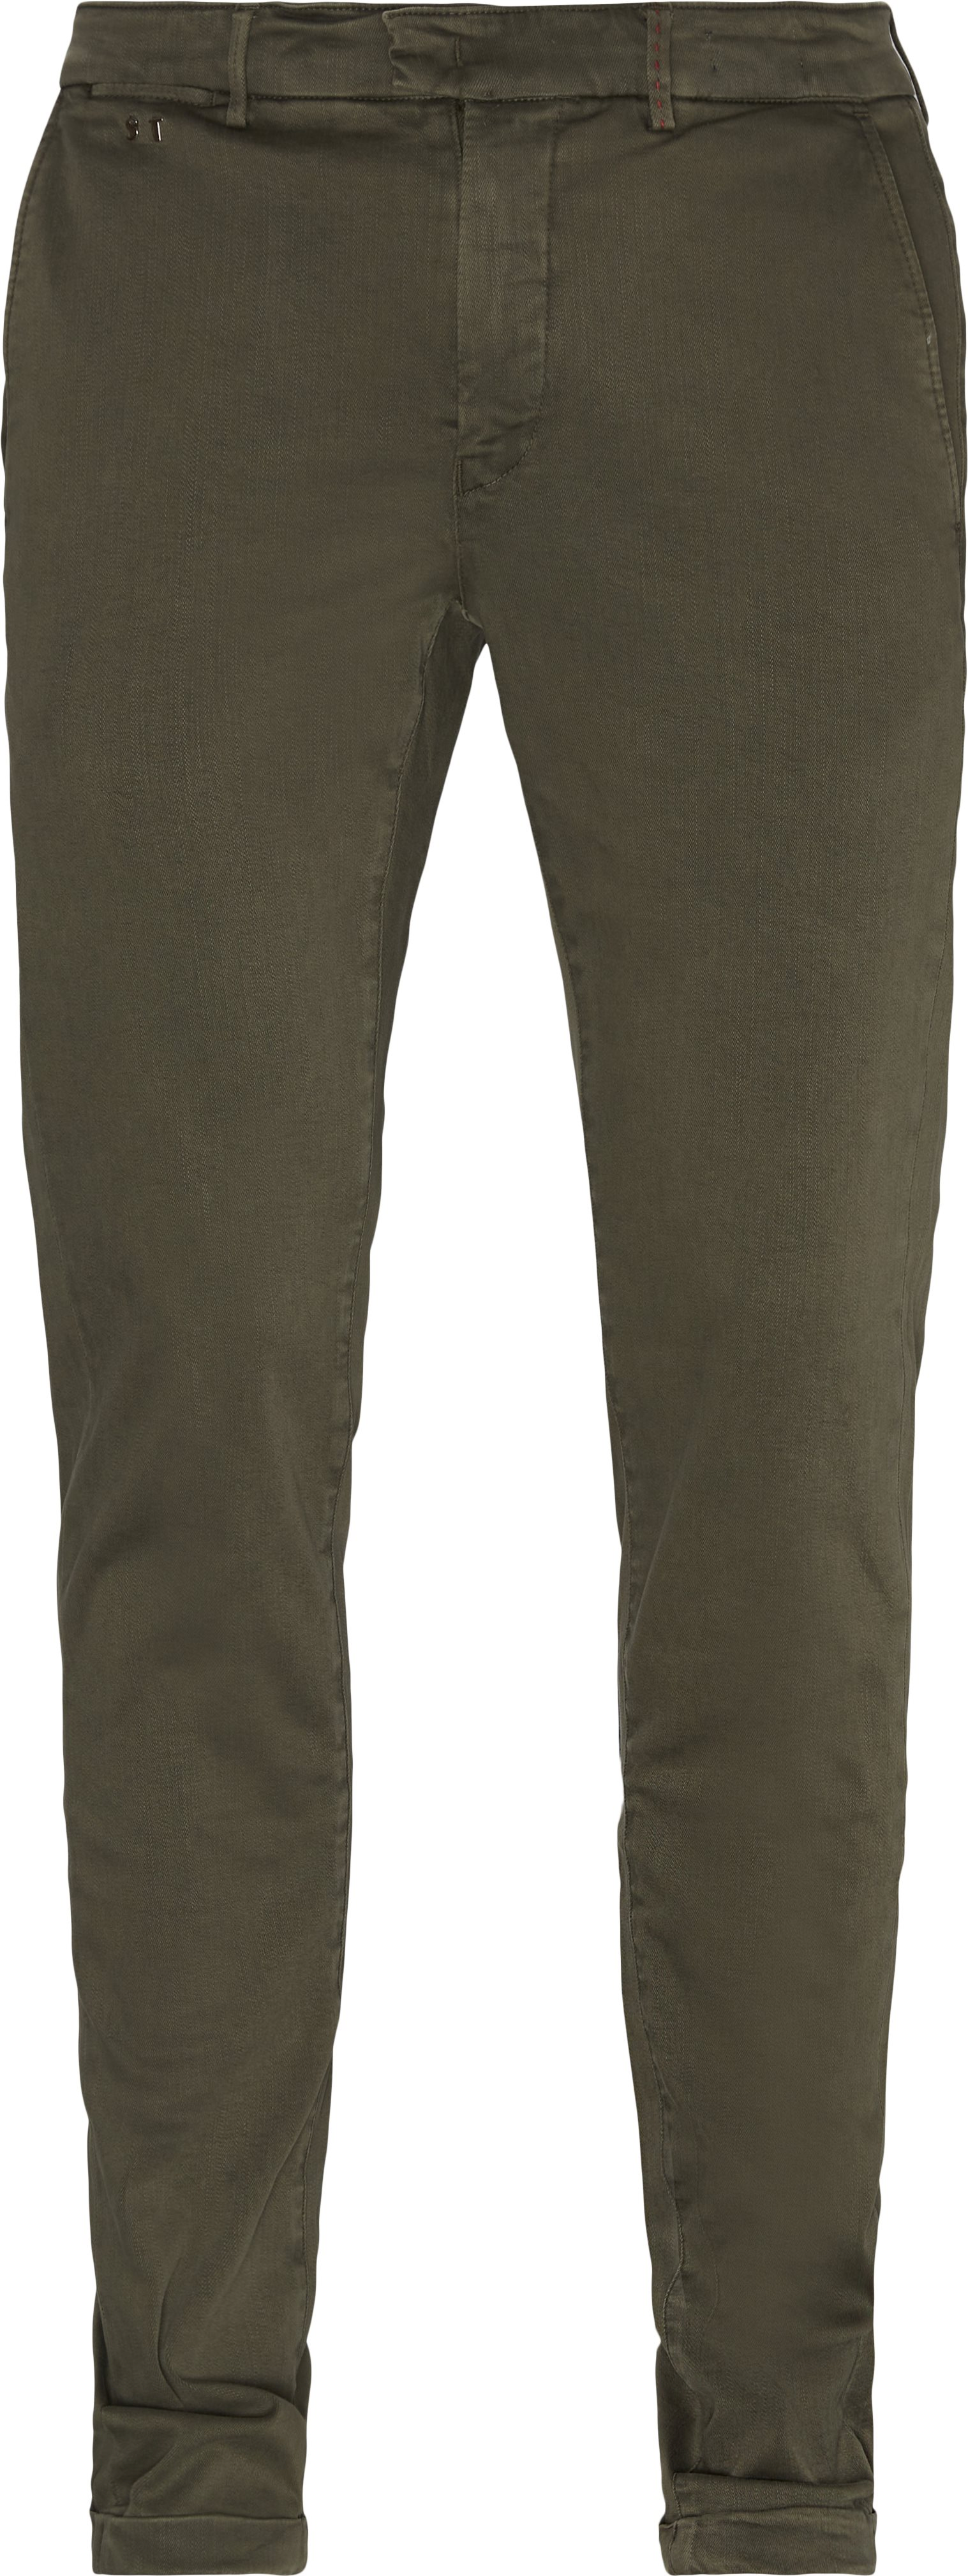 Trousers - Slim fit - Army